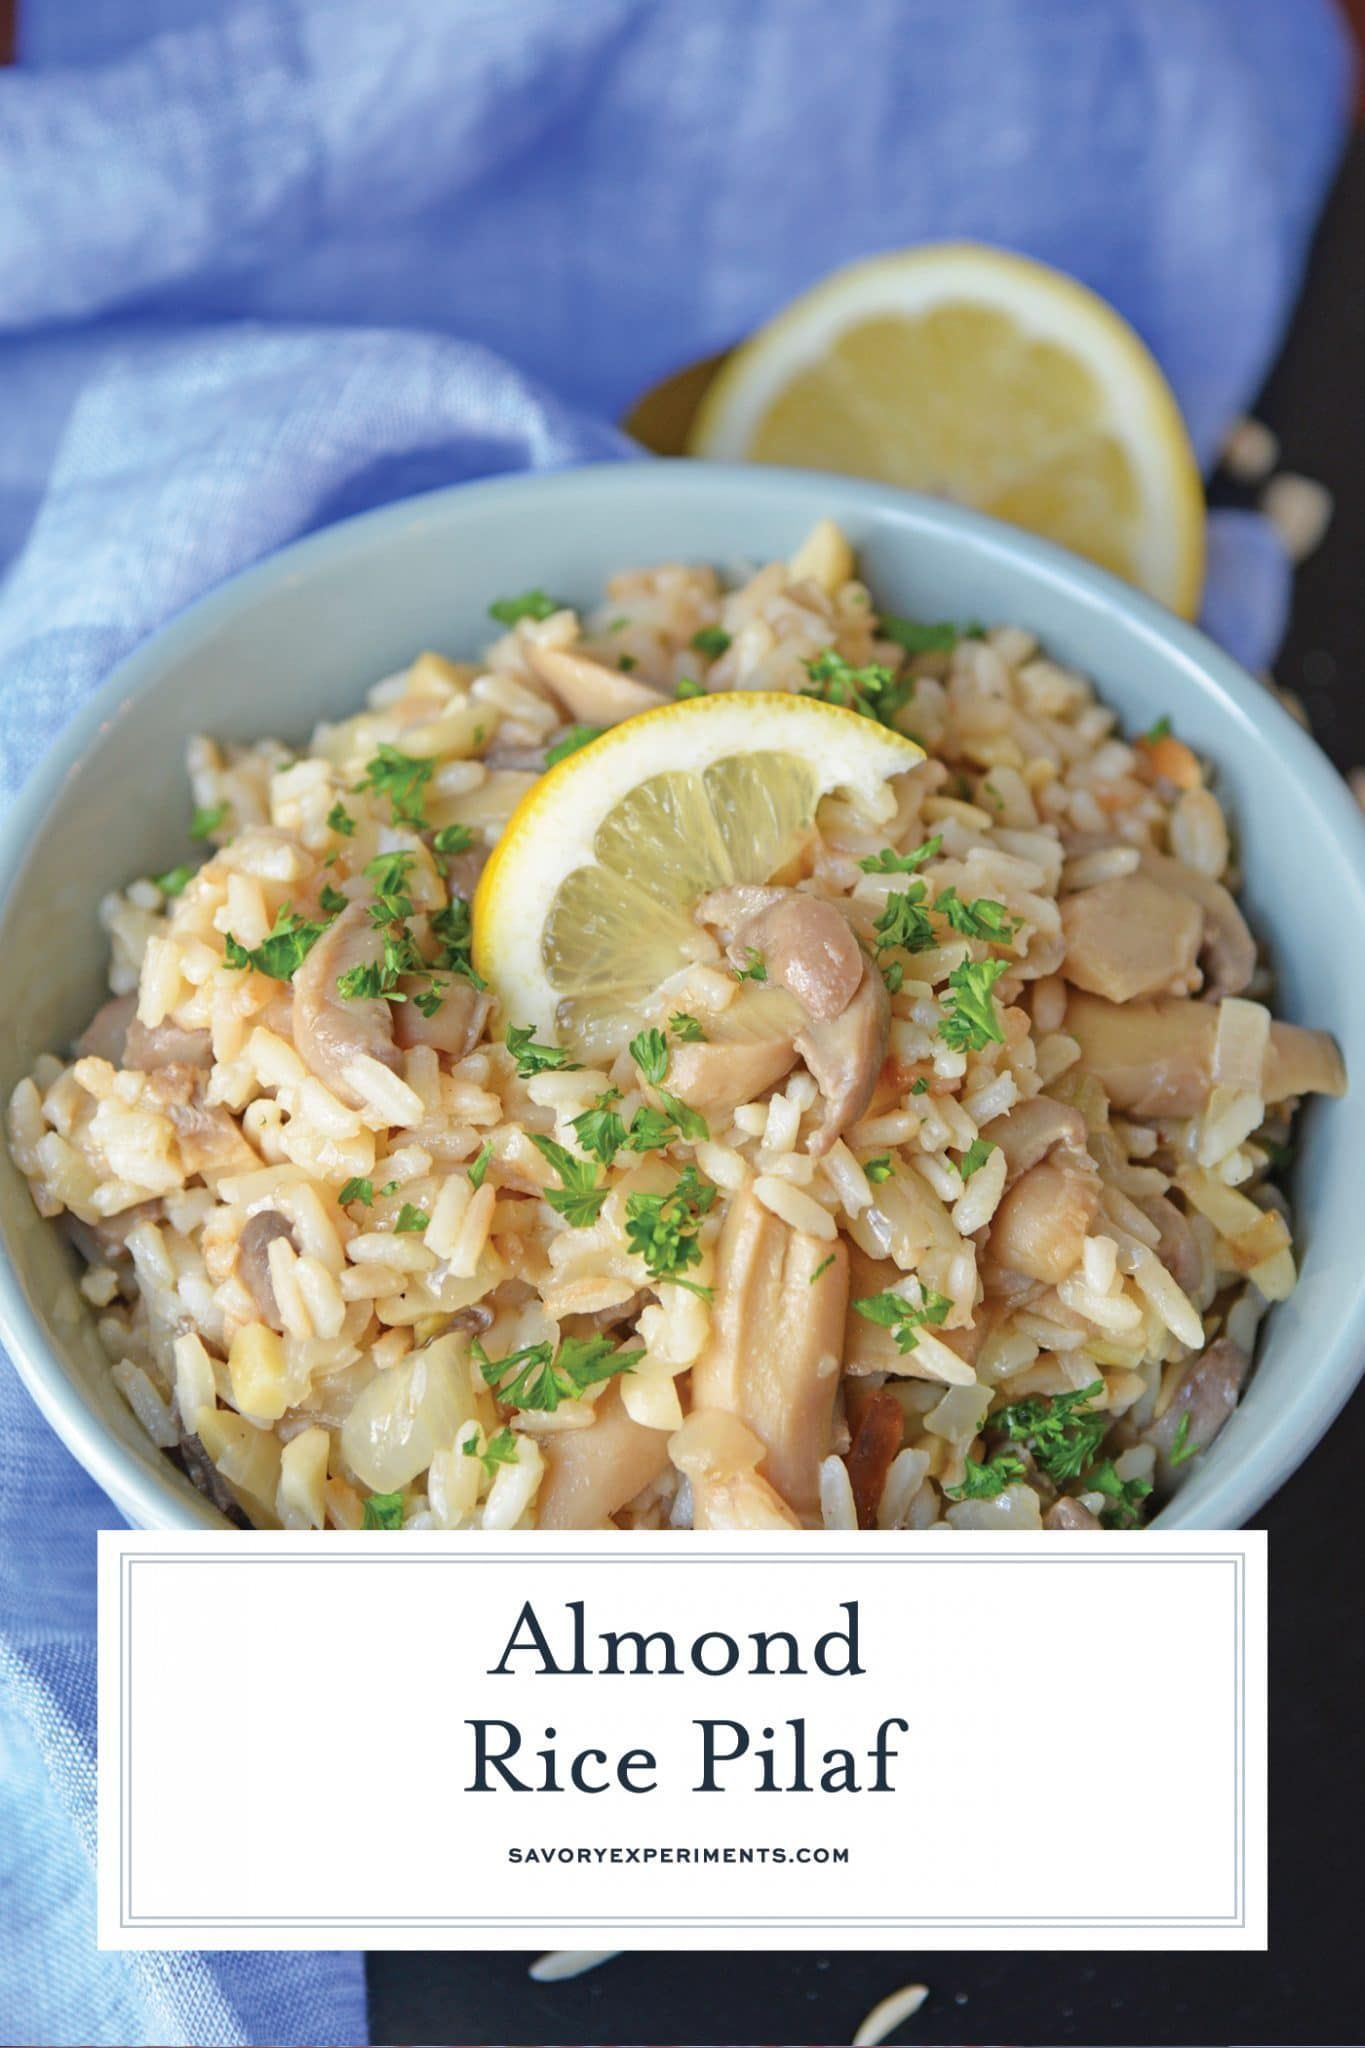 Almond Rice Pilaf is an easy side dish made with crunchy almonds, mushrooms and savory chicken broth and lemon juice to give it loads of flavor! An easy rice recipe the whole family will love. #ricepilafrecipe #easysidedish www.savoryexperiments.com #easyricepilaf Almond Rice Pilaf is an easy side dish made with crunchy almonds, mushrooms and savory chicken broth and lemon juice to give it loads of flavor! An easy rice recipe the whole family will love. #ricepilafrecipe #easysidedish www.savorye #easyricepilaf